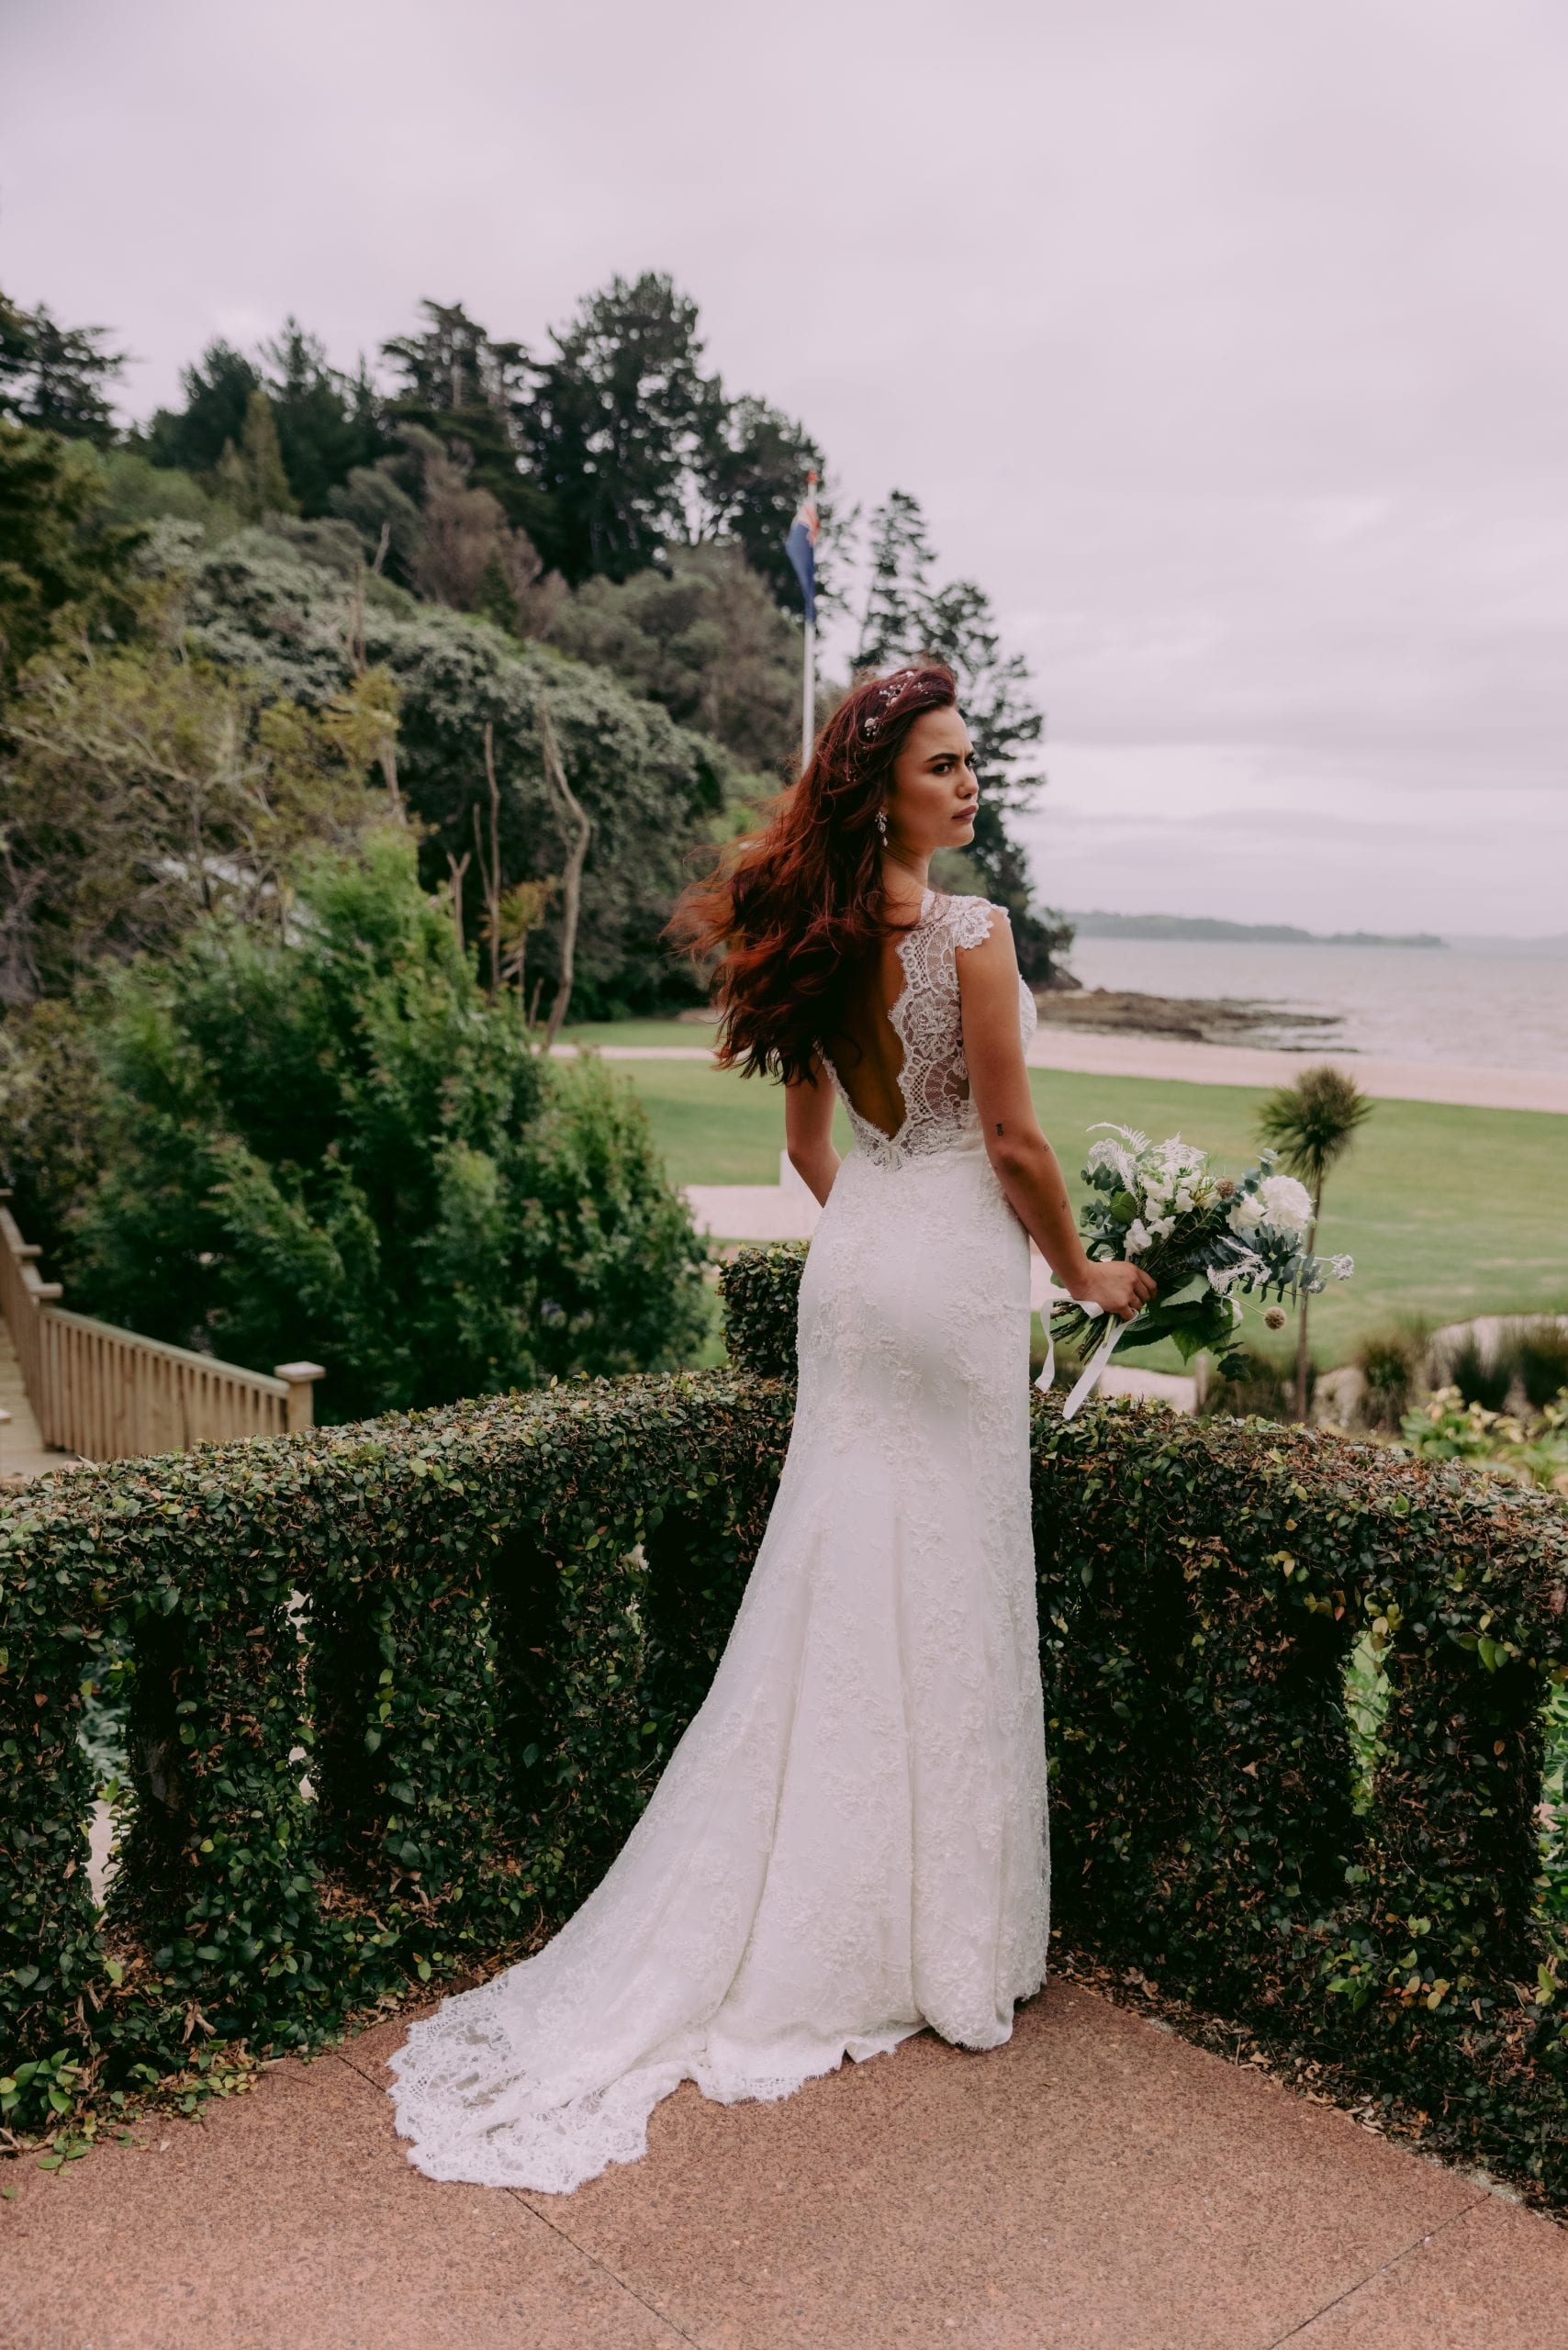 Fallyn Wedding gown from Vinka Design - This wedding dress is a timeless classic. Dramatic scallop lace and deep V-shaped neckline with beautiful low back and mini cap sleeves. This gown is cut in a fit-and-flare design with a side split. Model wearing gown in Clevedon gardens with train flowing behind.